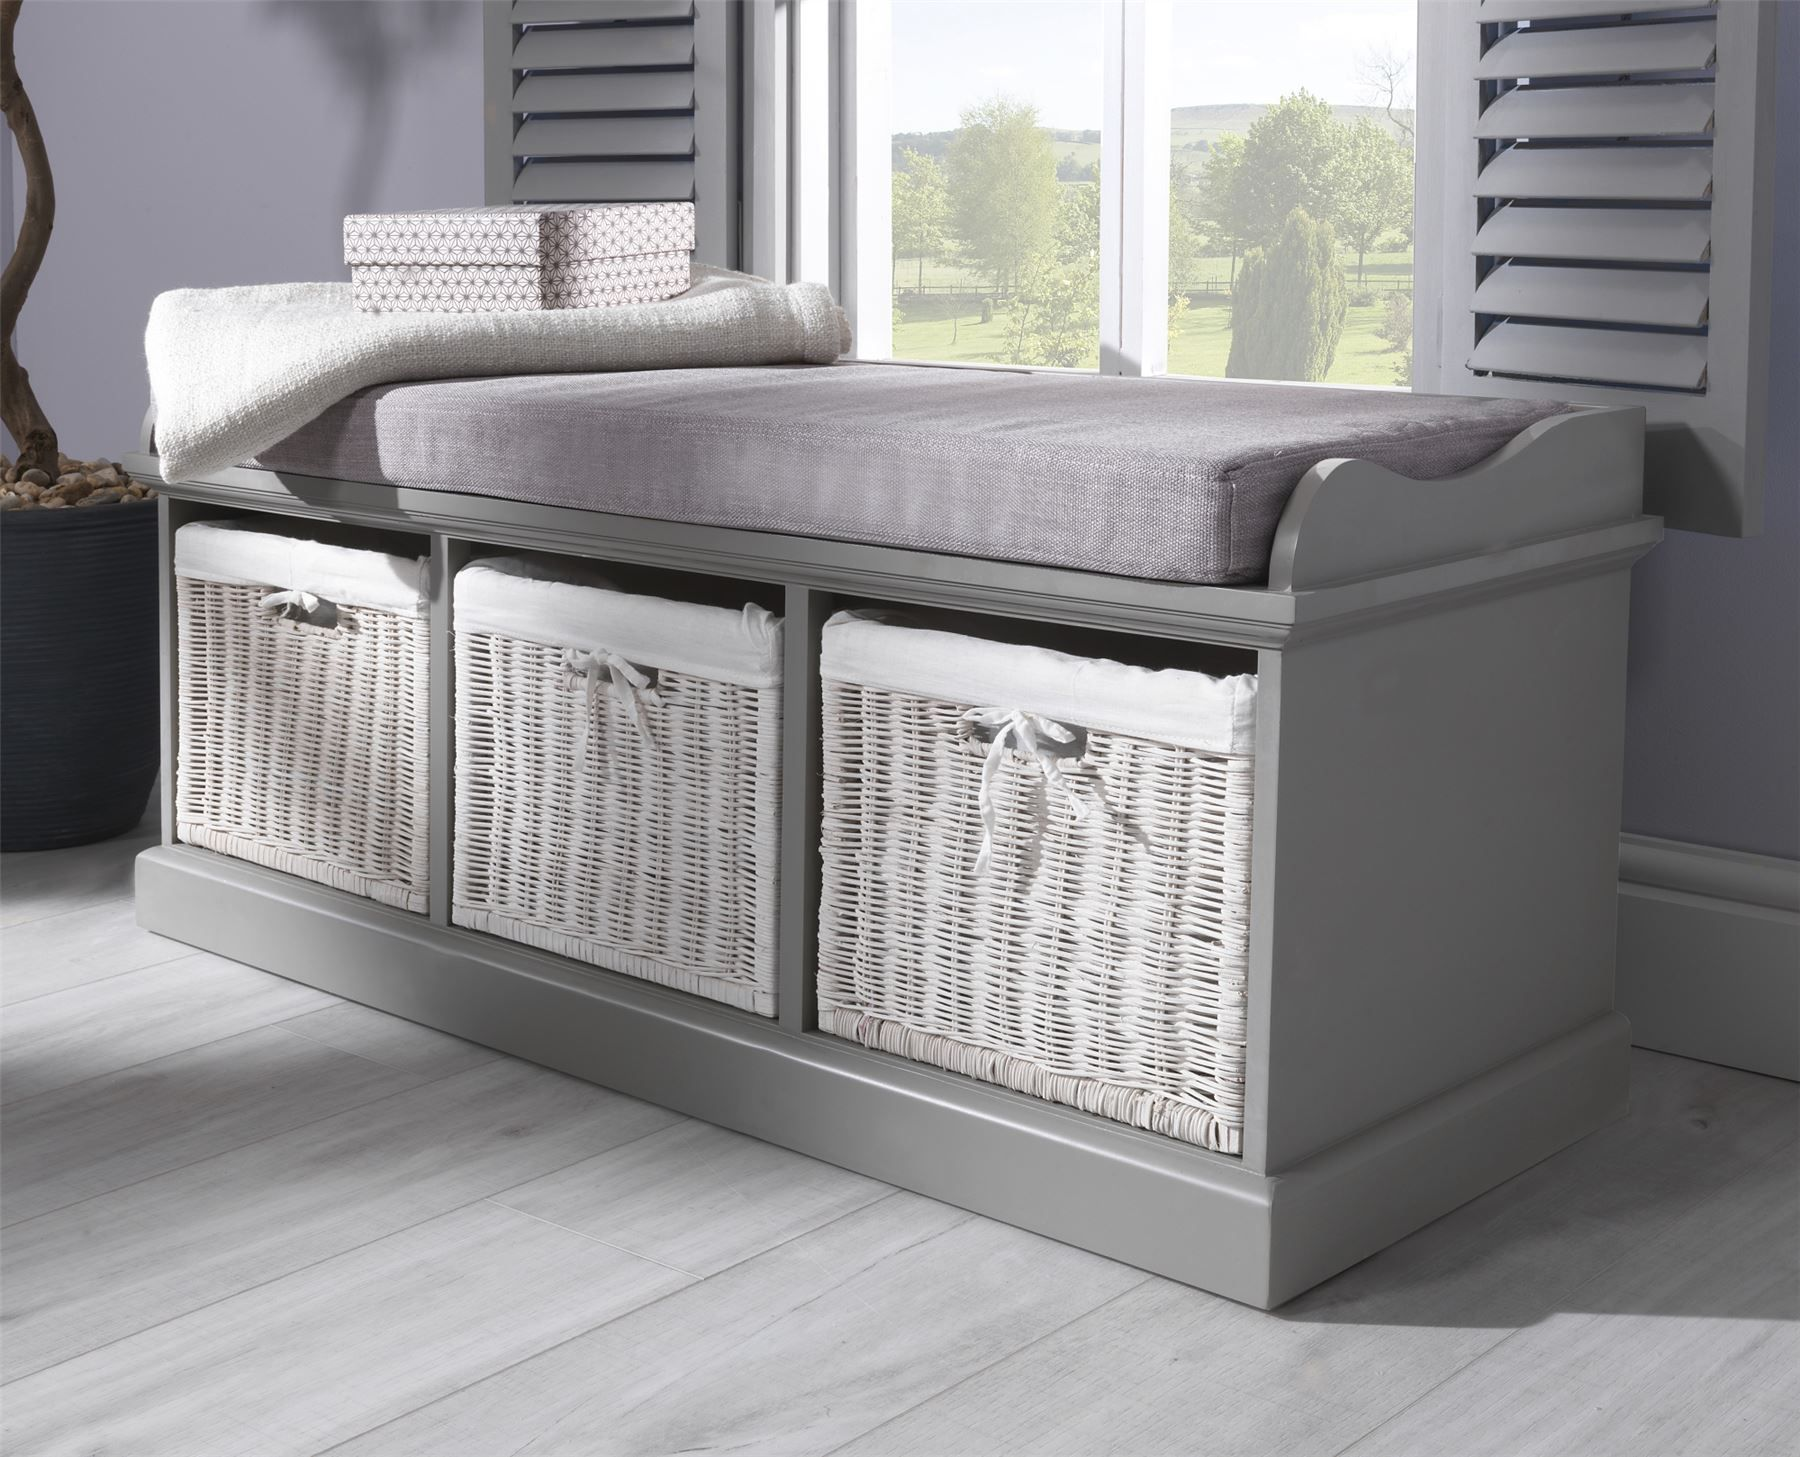 Brilliant Details About Tetbury Bench With 3 Storage Baskets Sturdy Camellatalisay Diy Chair Ideas Camellatalisaycom